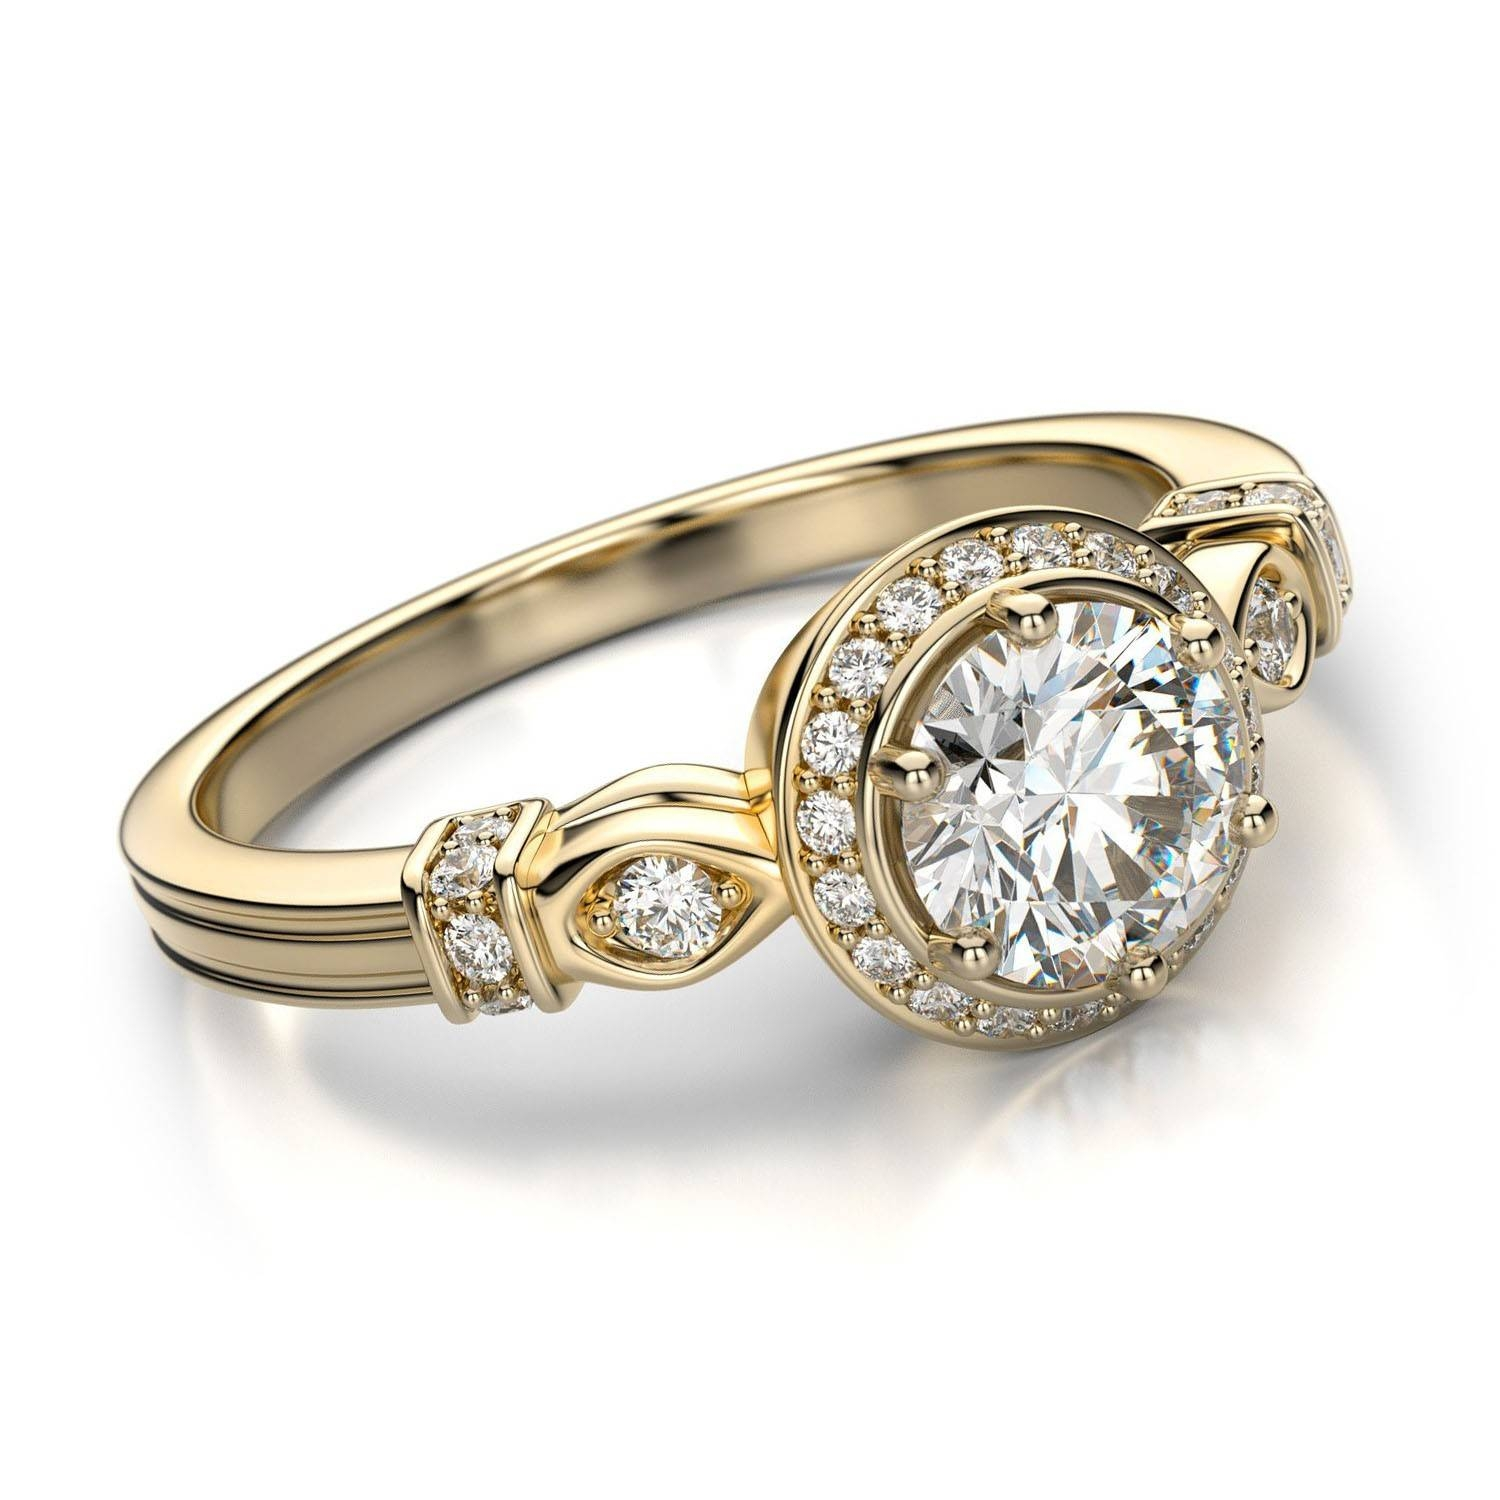 Old Fashioned Style Wedding Rings Luxury Vintage Style Wedding Regarding Vintage Style Wedding Rings For Women (Gallery 14 of 15)